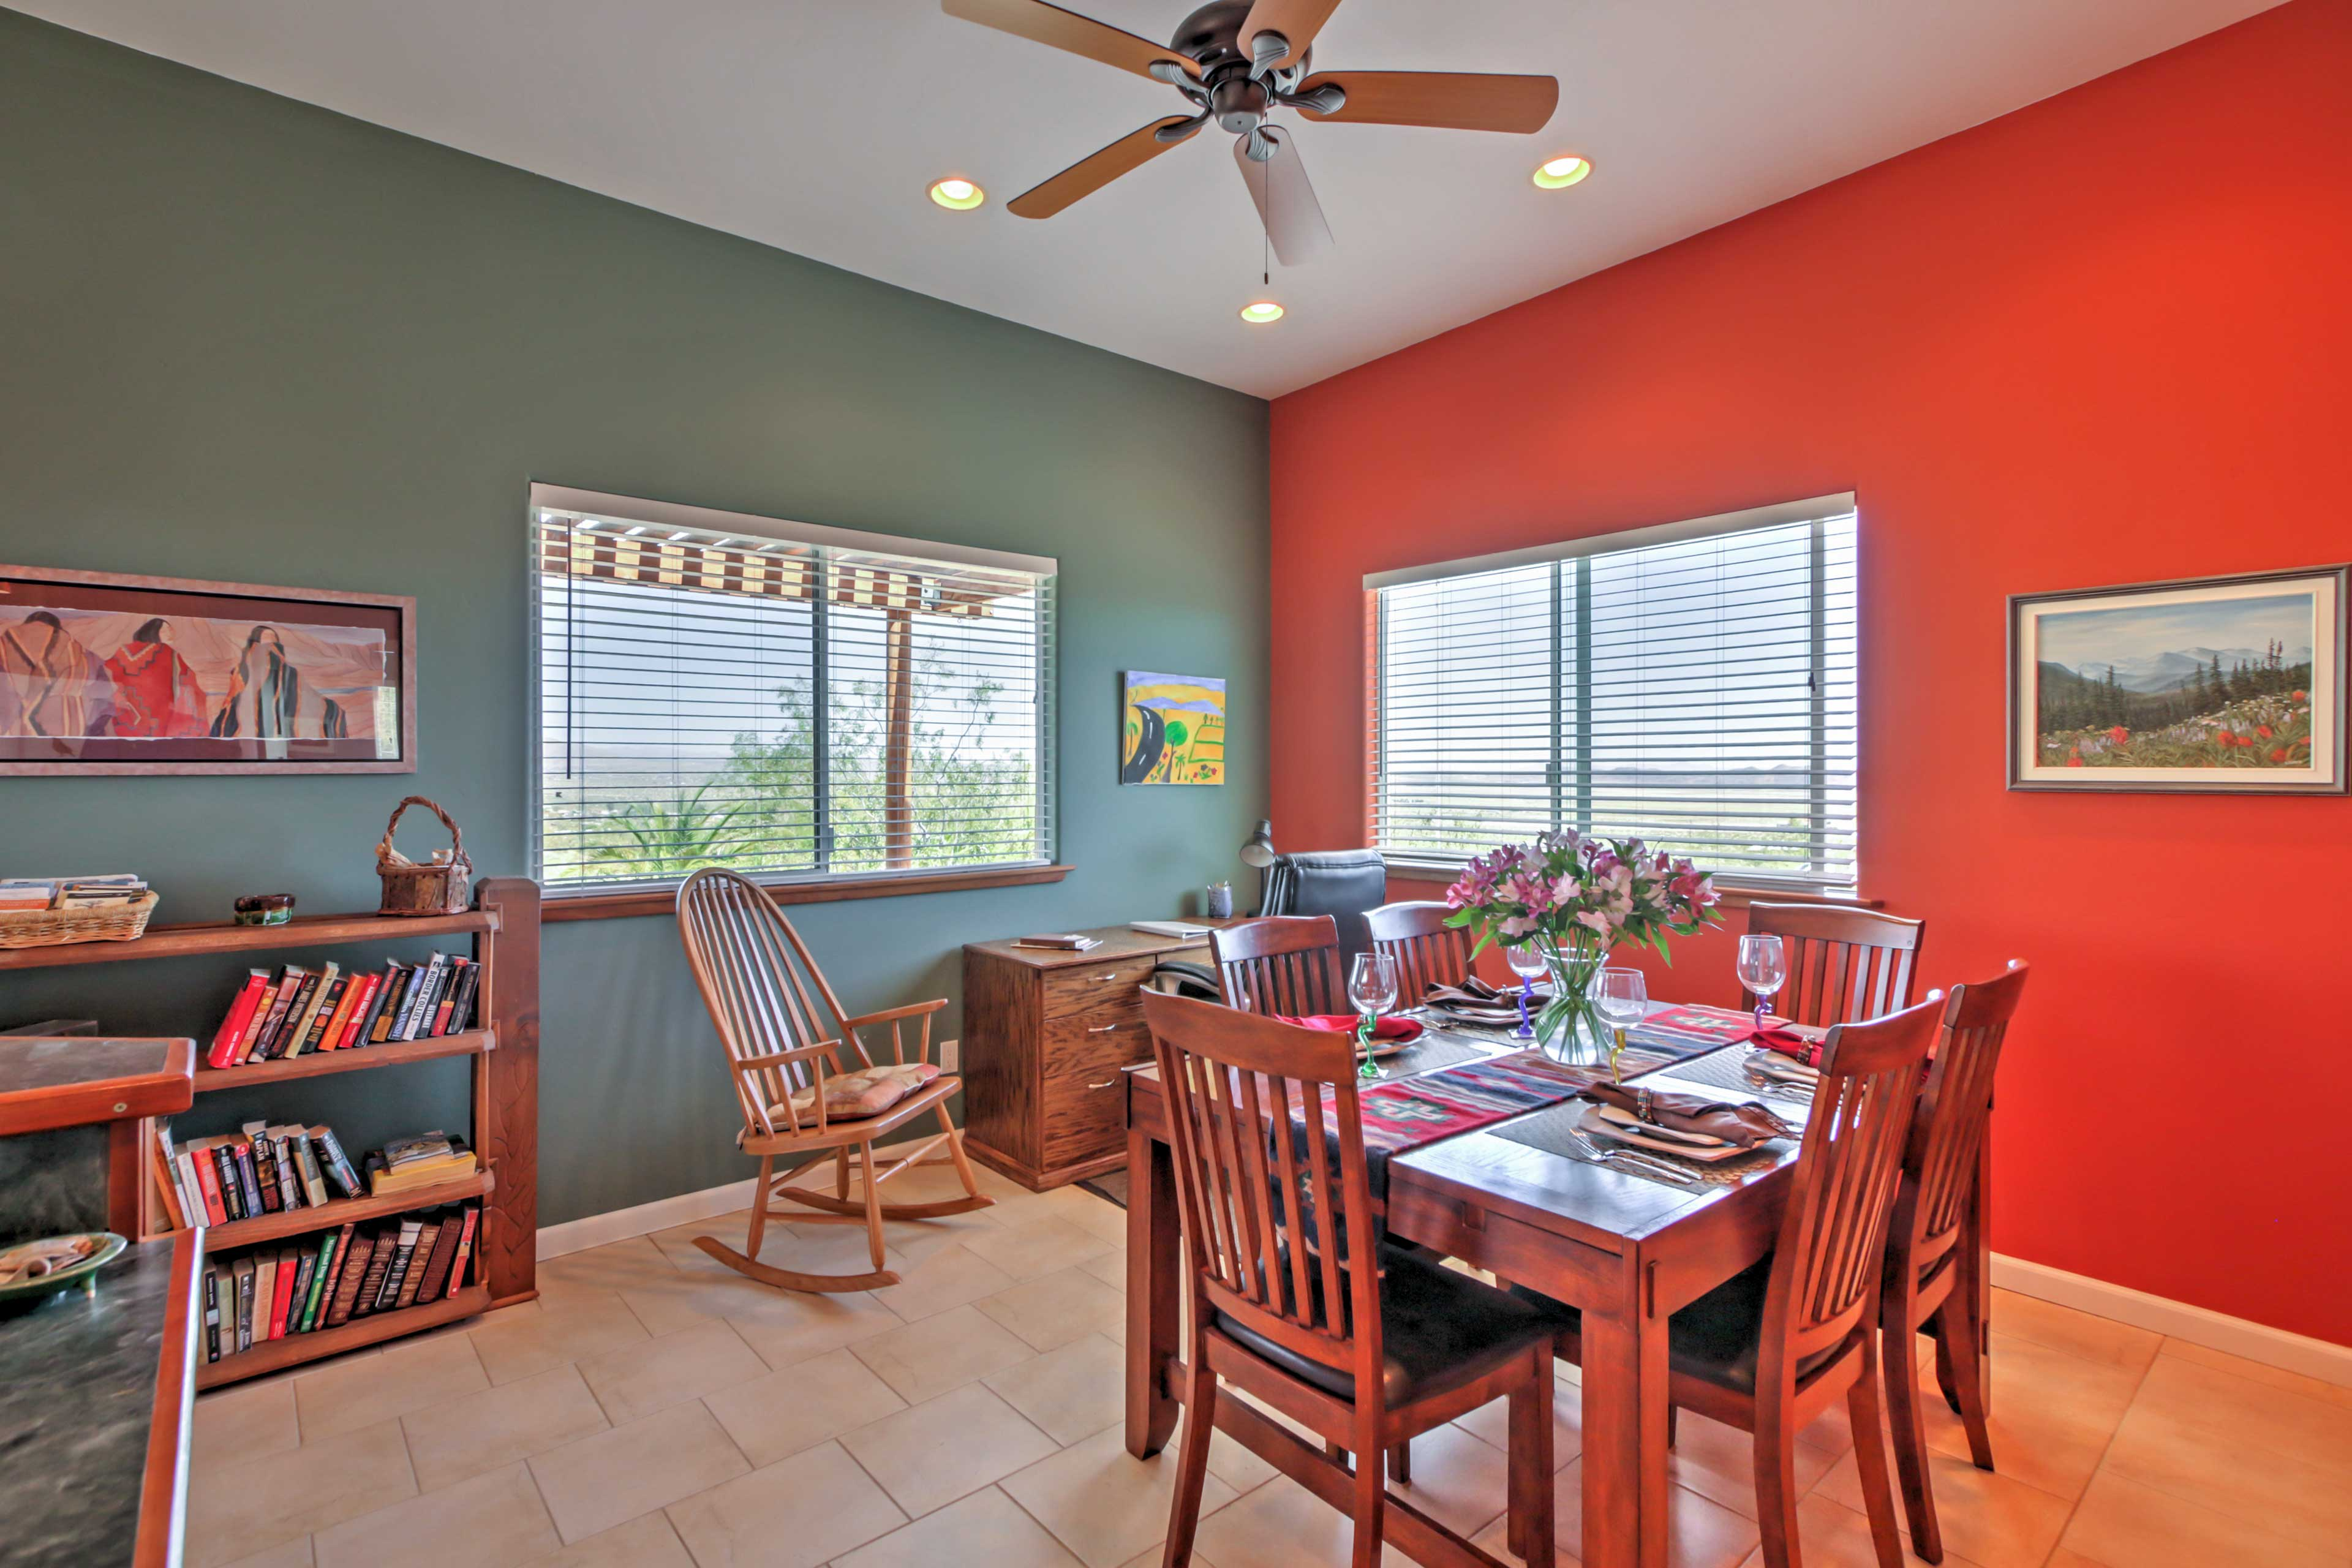 Enjoy home-cooked meals at the dining table set for 6.